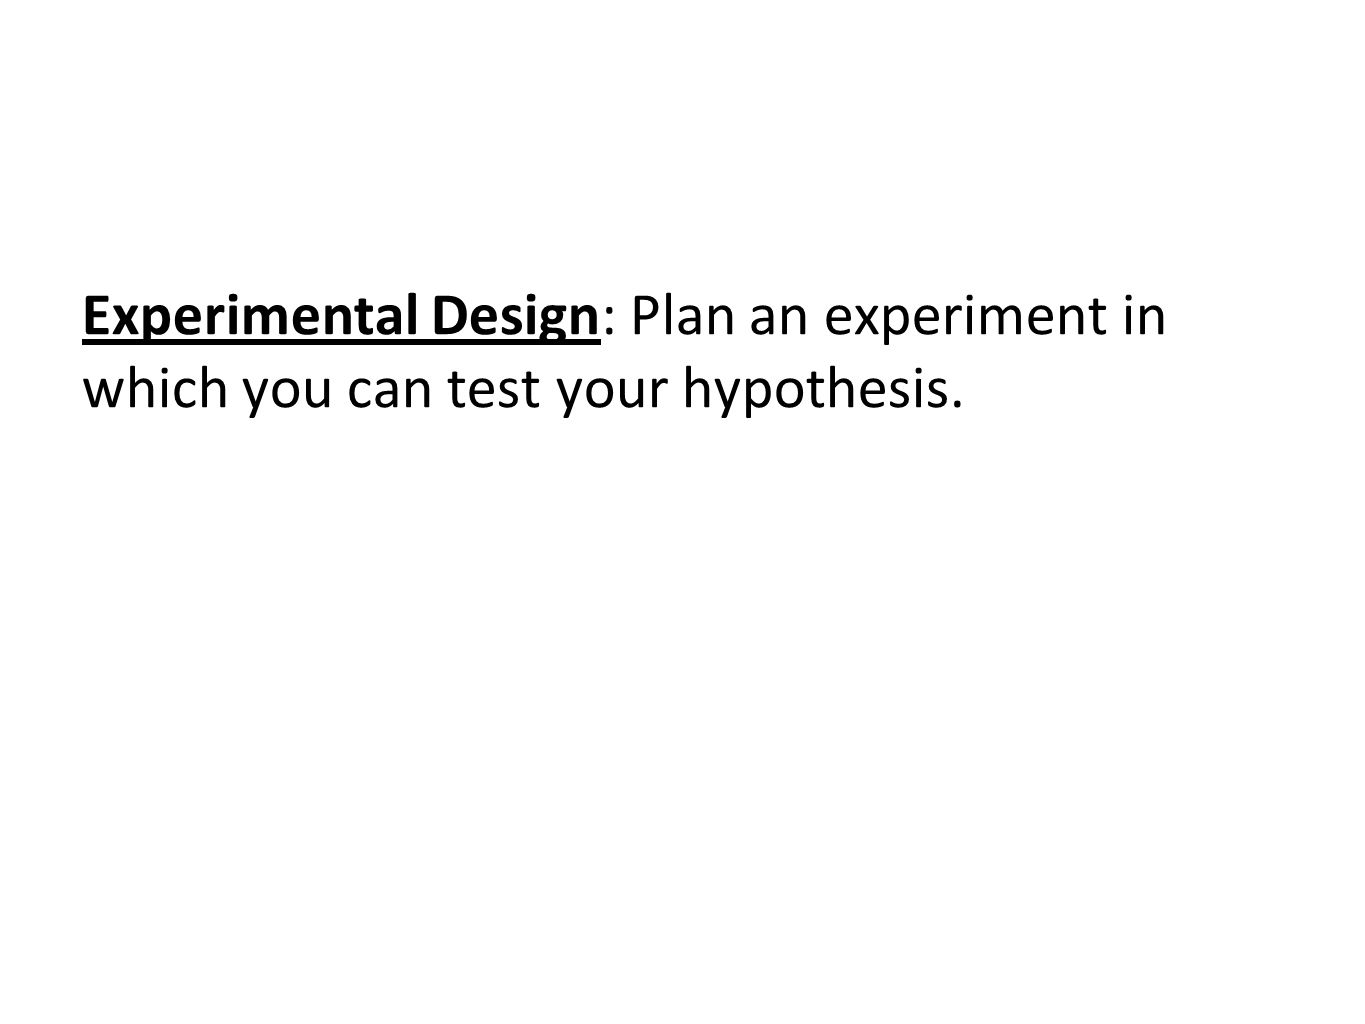 Experimental Design: Plan an experiment in which you can test your hypothesis.